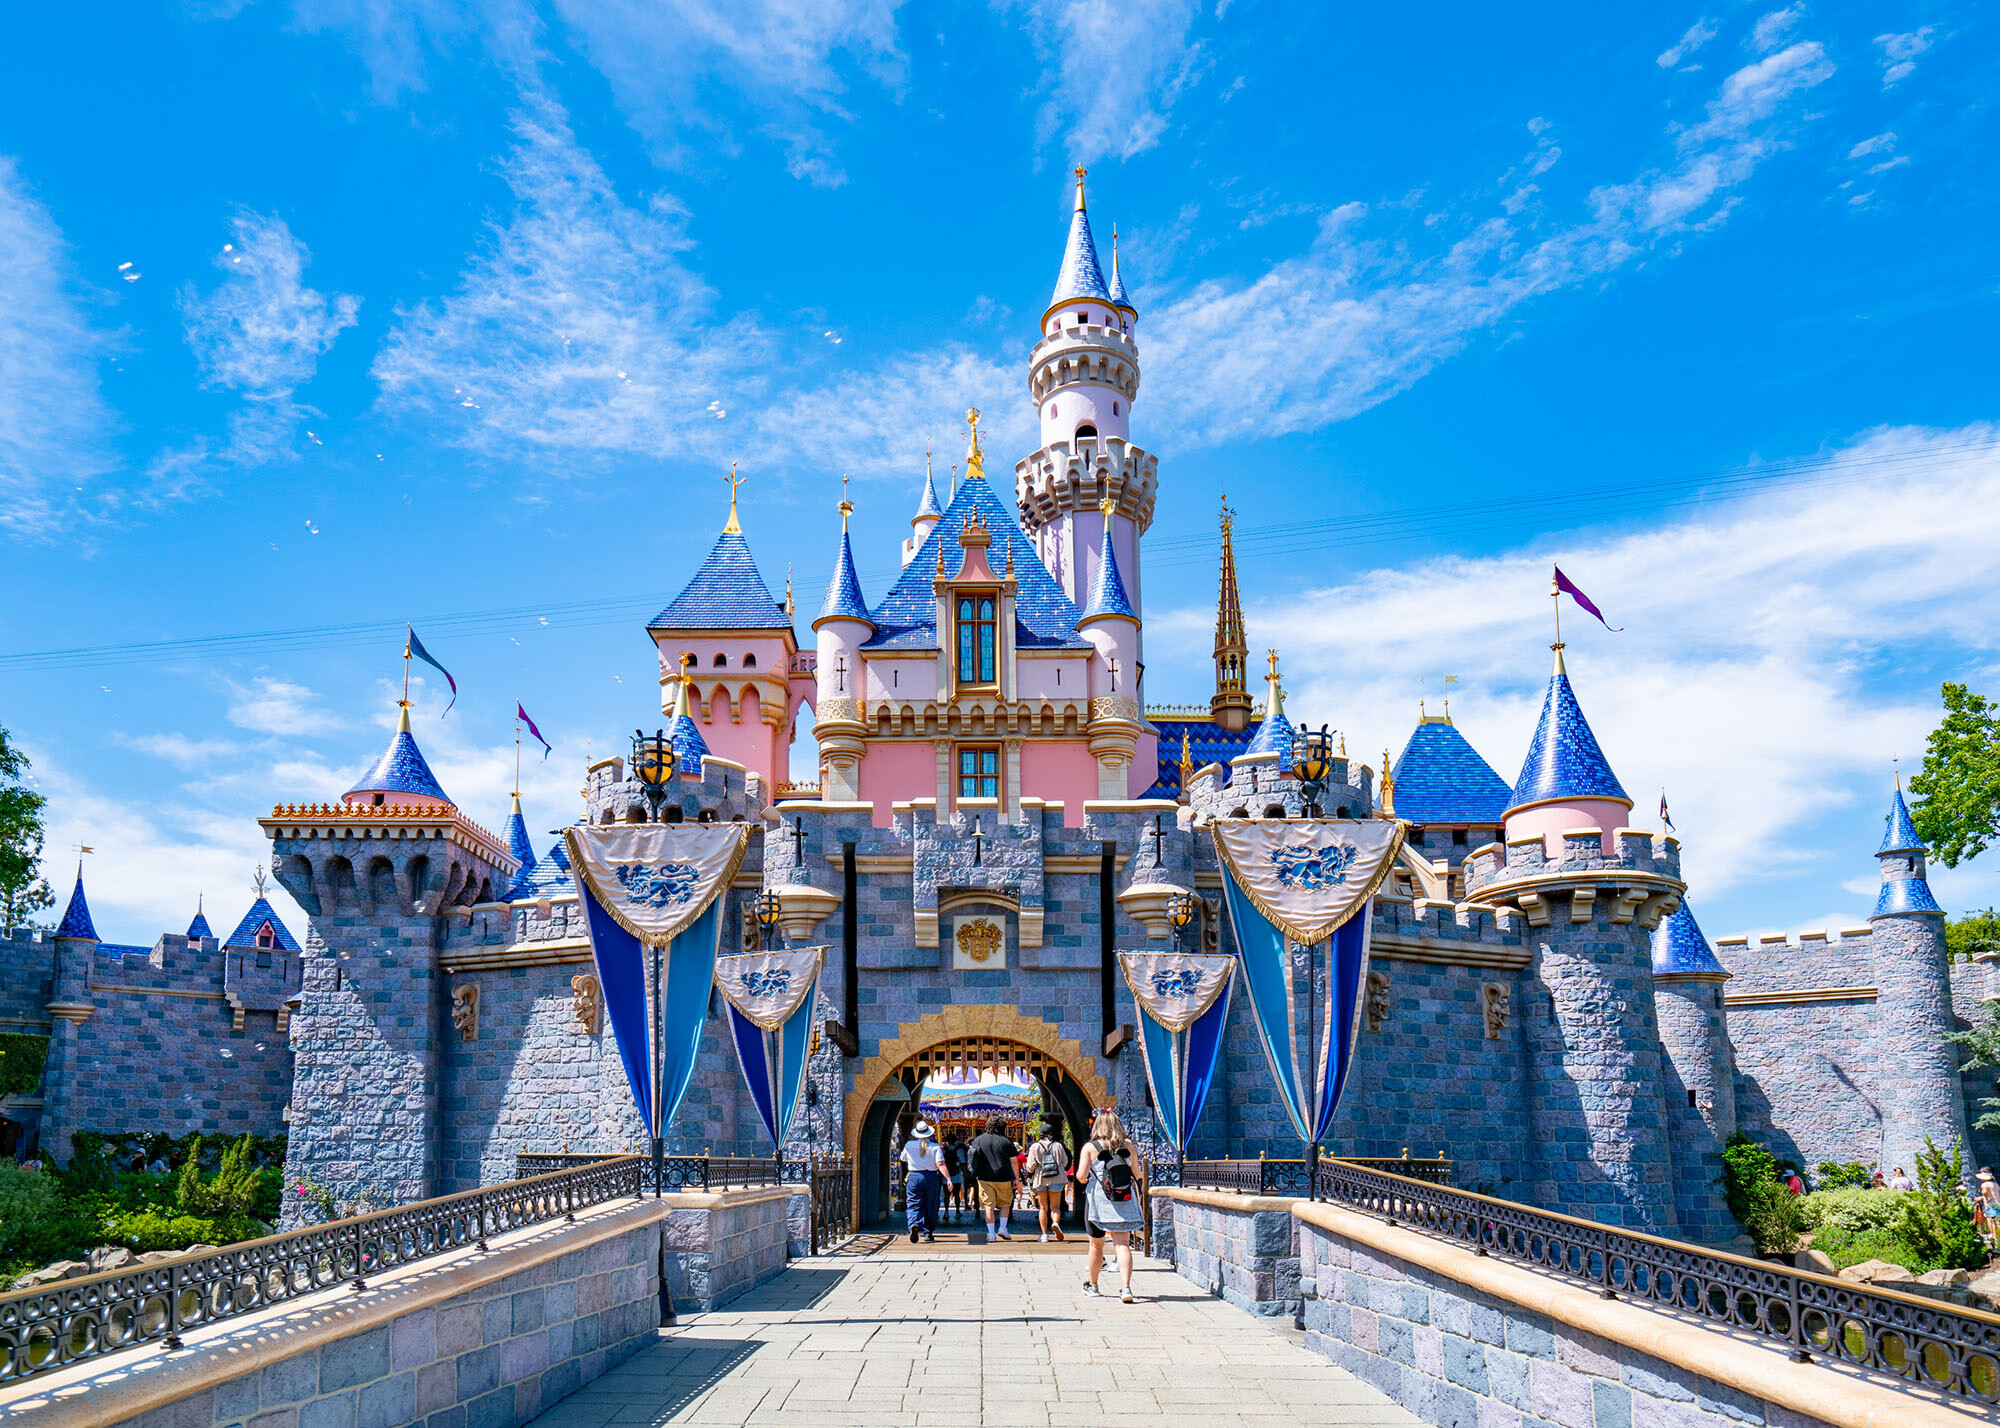 Disney and big banks lead stocks to new all-time highs